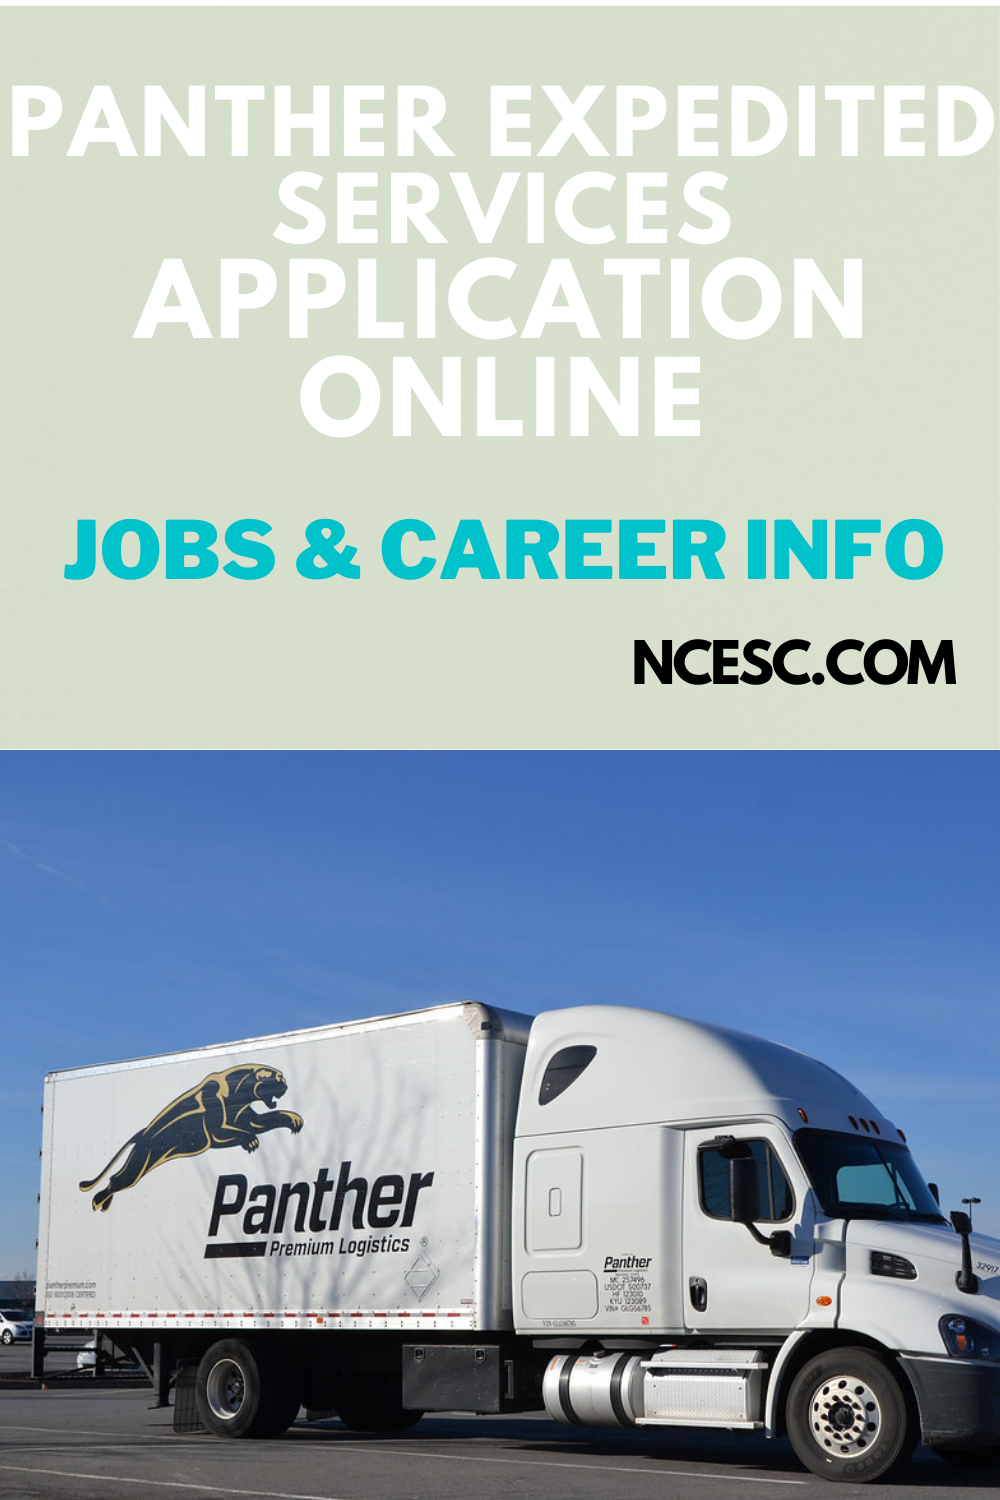 panther expedited services application